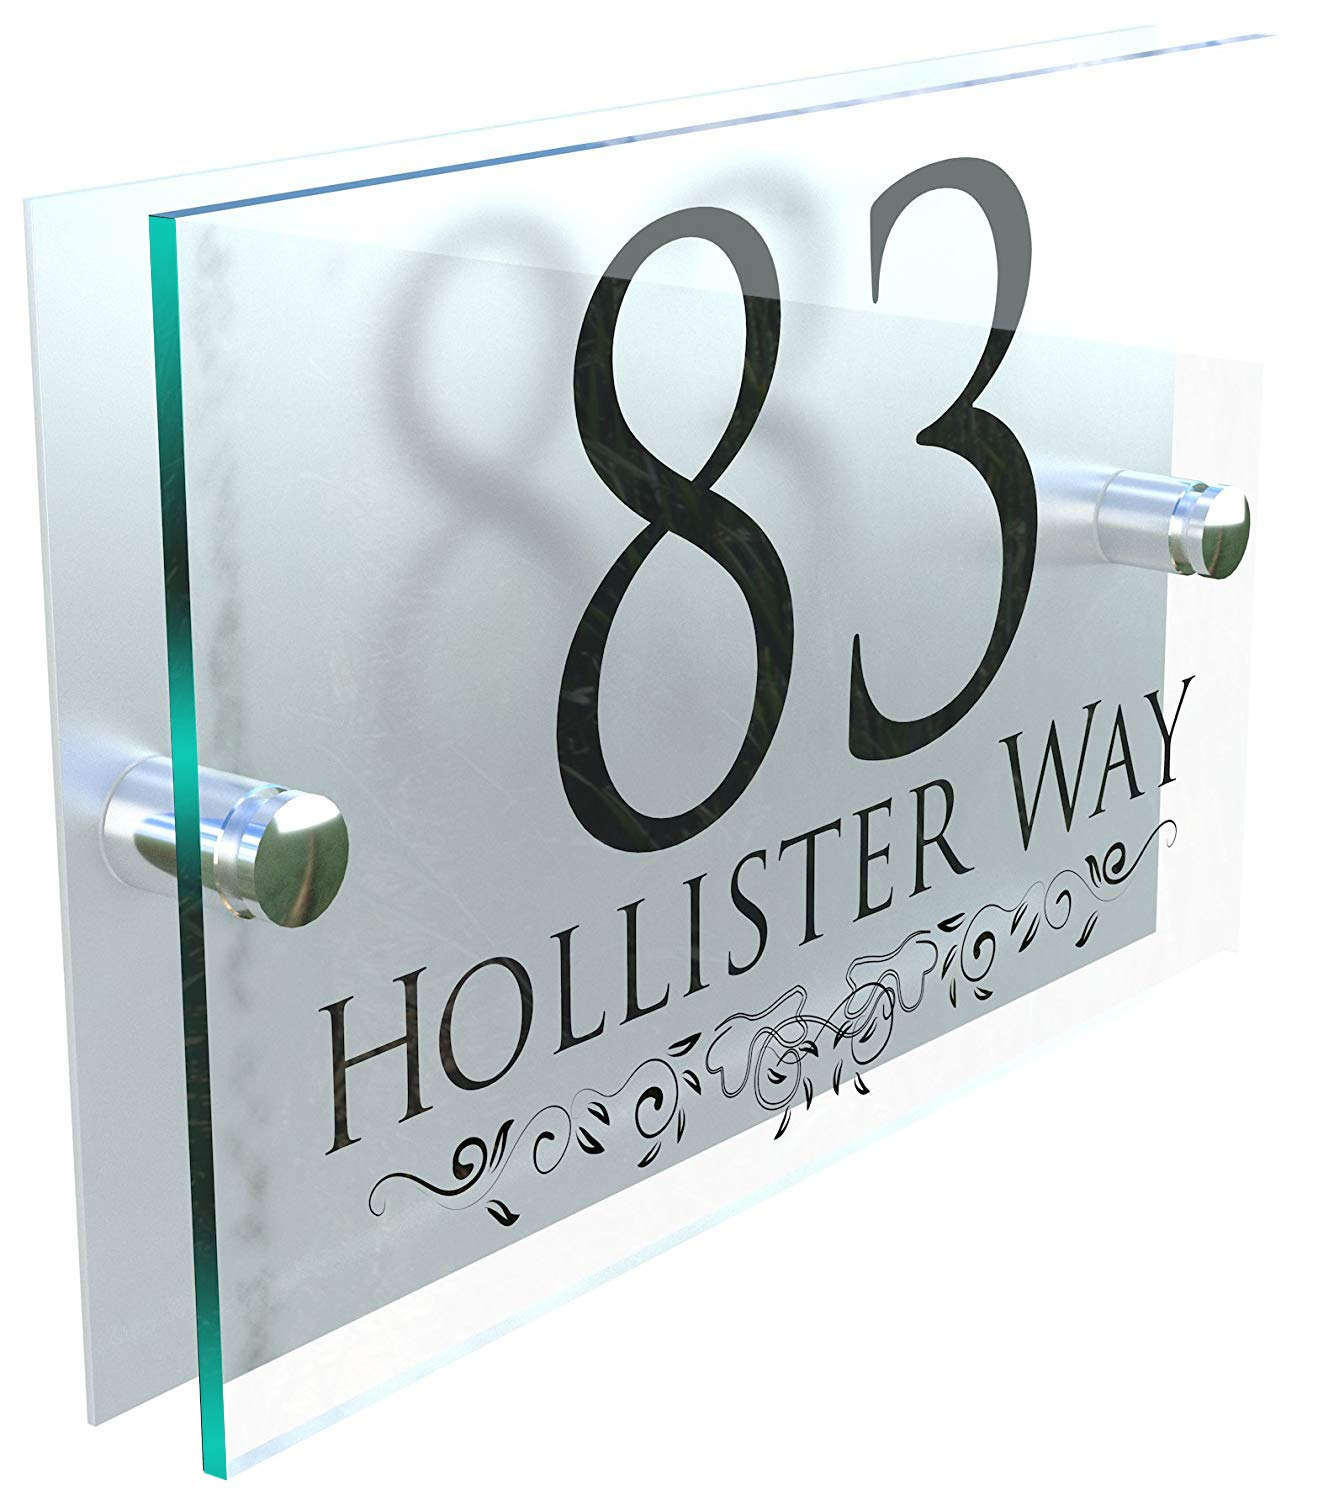 DECORATIVE PERSONALISED WALL PLAQUES DOOR NUMBERS STREET GLASS EFFECT ACRYLIC ALUMINIUM NAME - Black & Silver K Smart Sign Ltd